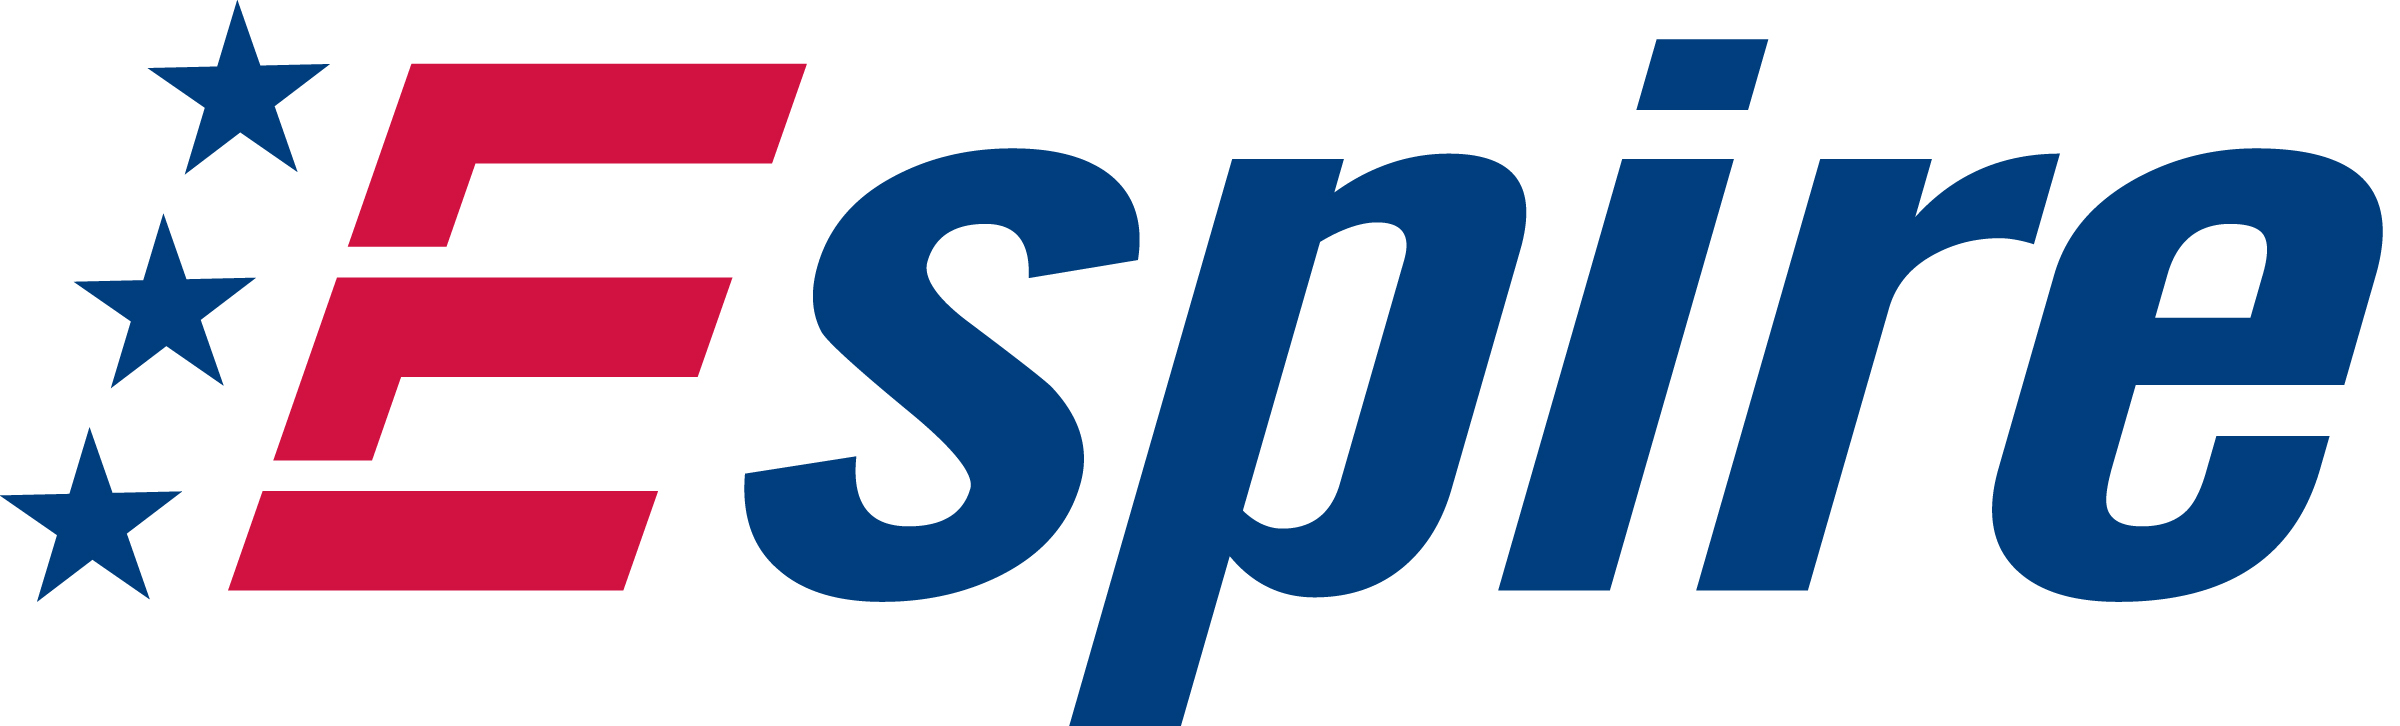 Espire Logo in color in High Resolution.jpg